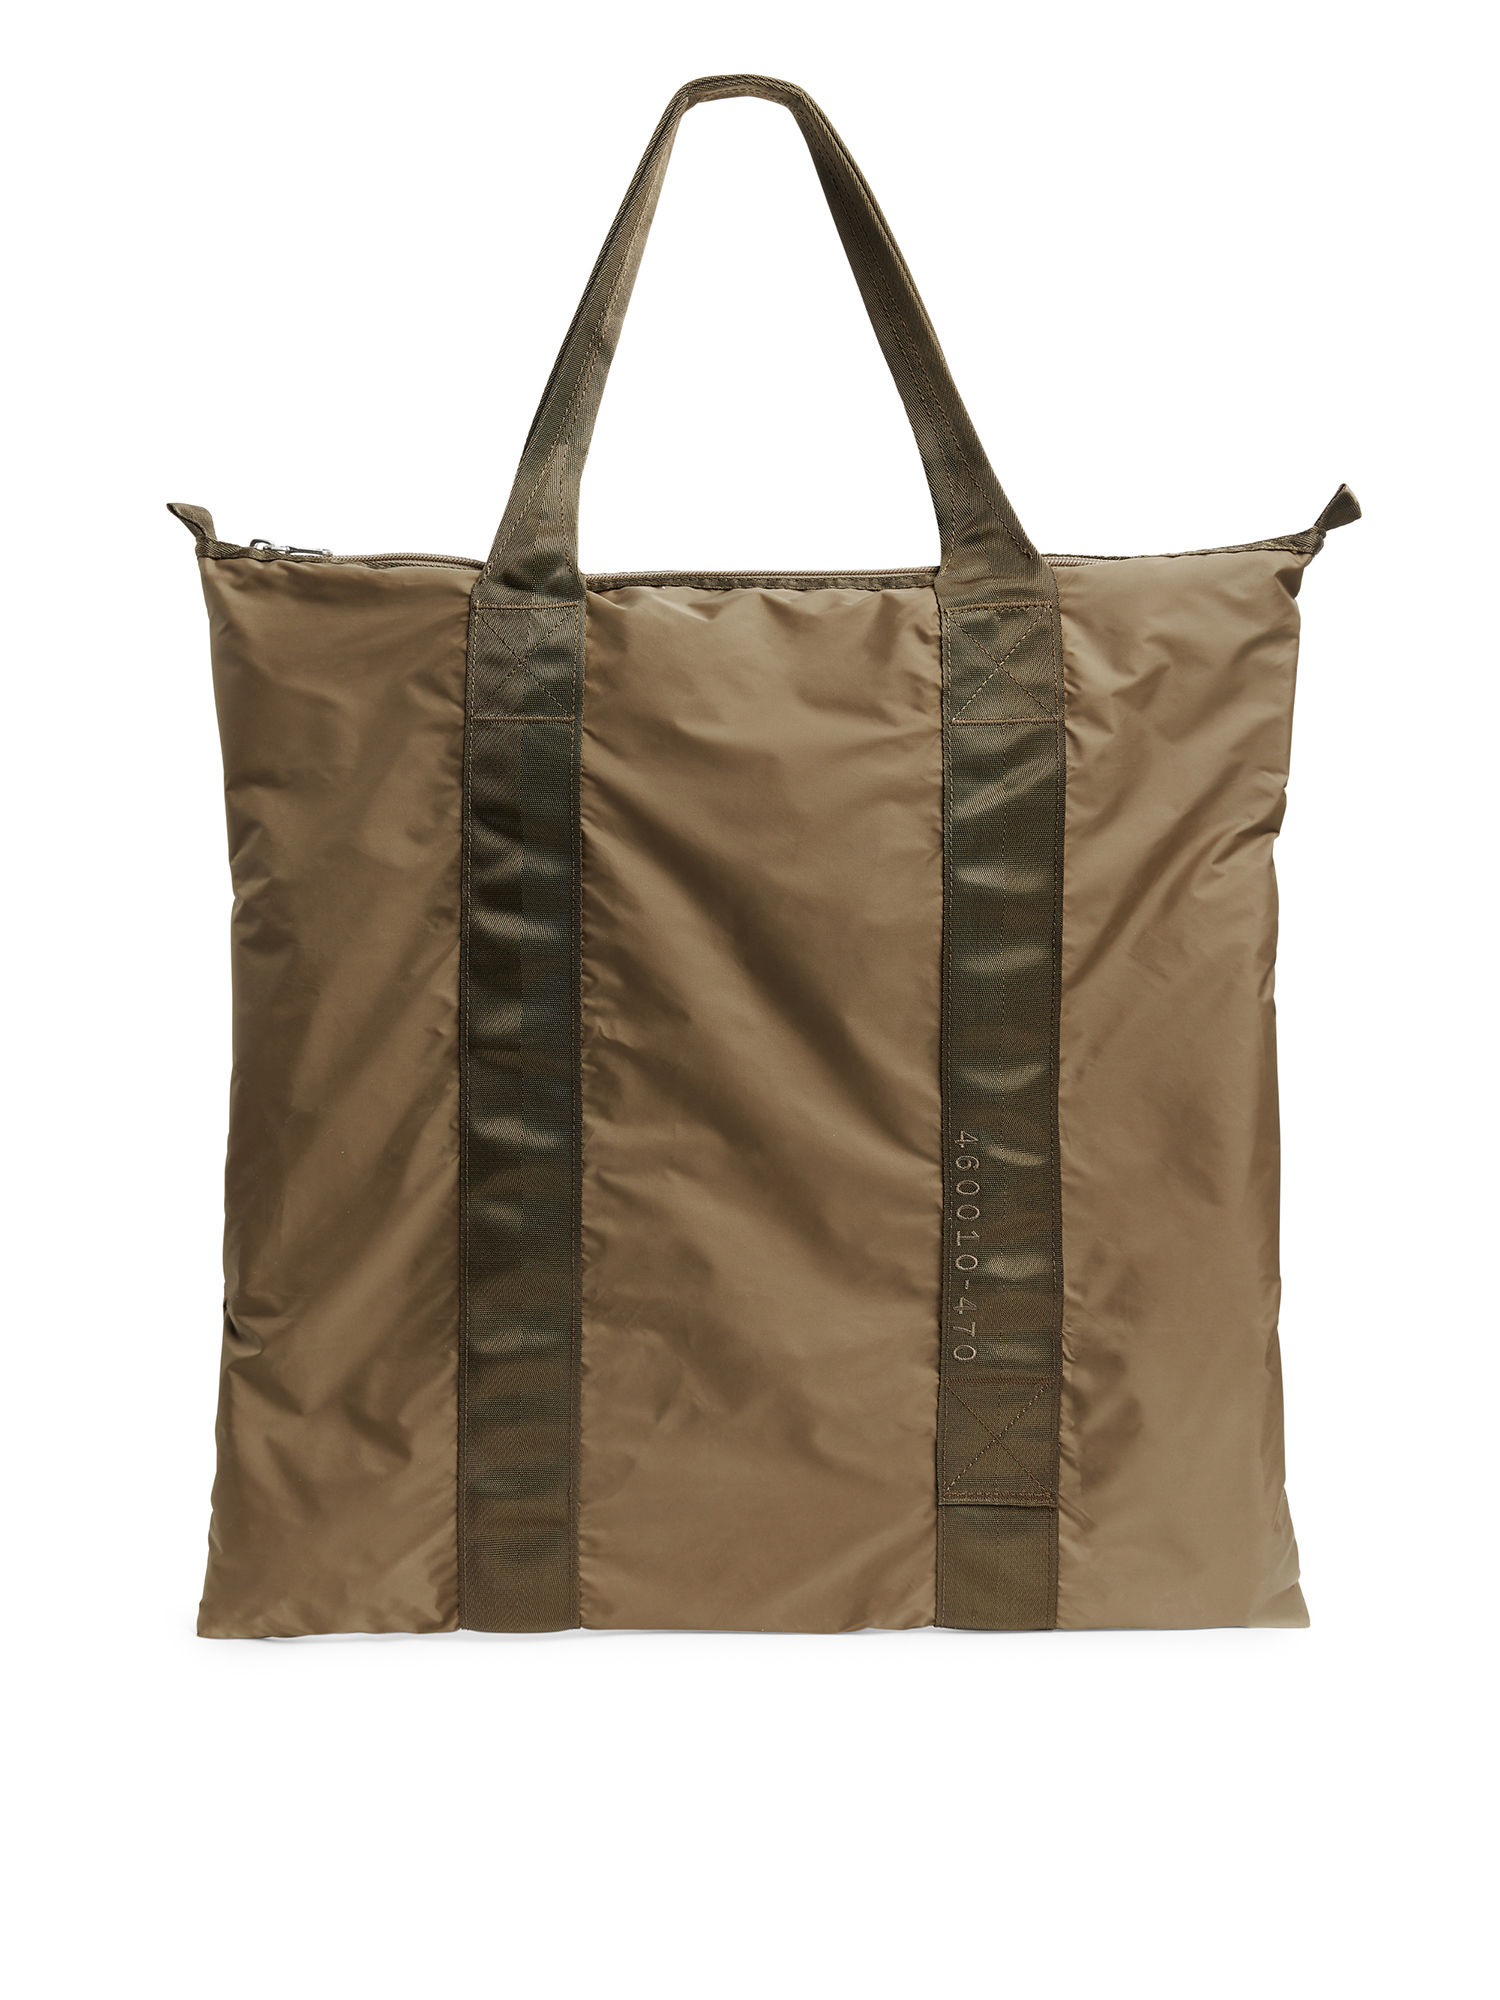 Fabric Swatch image of Arket packable tote in brown